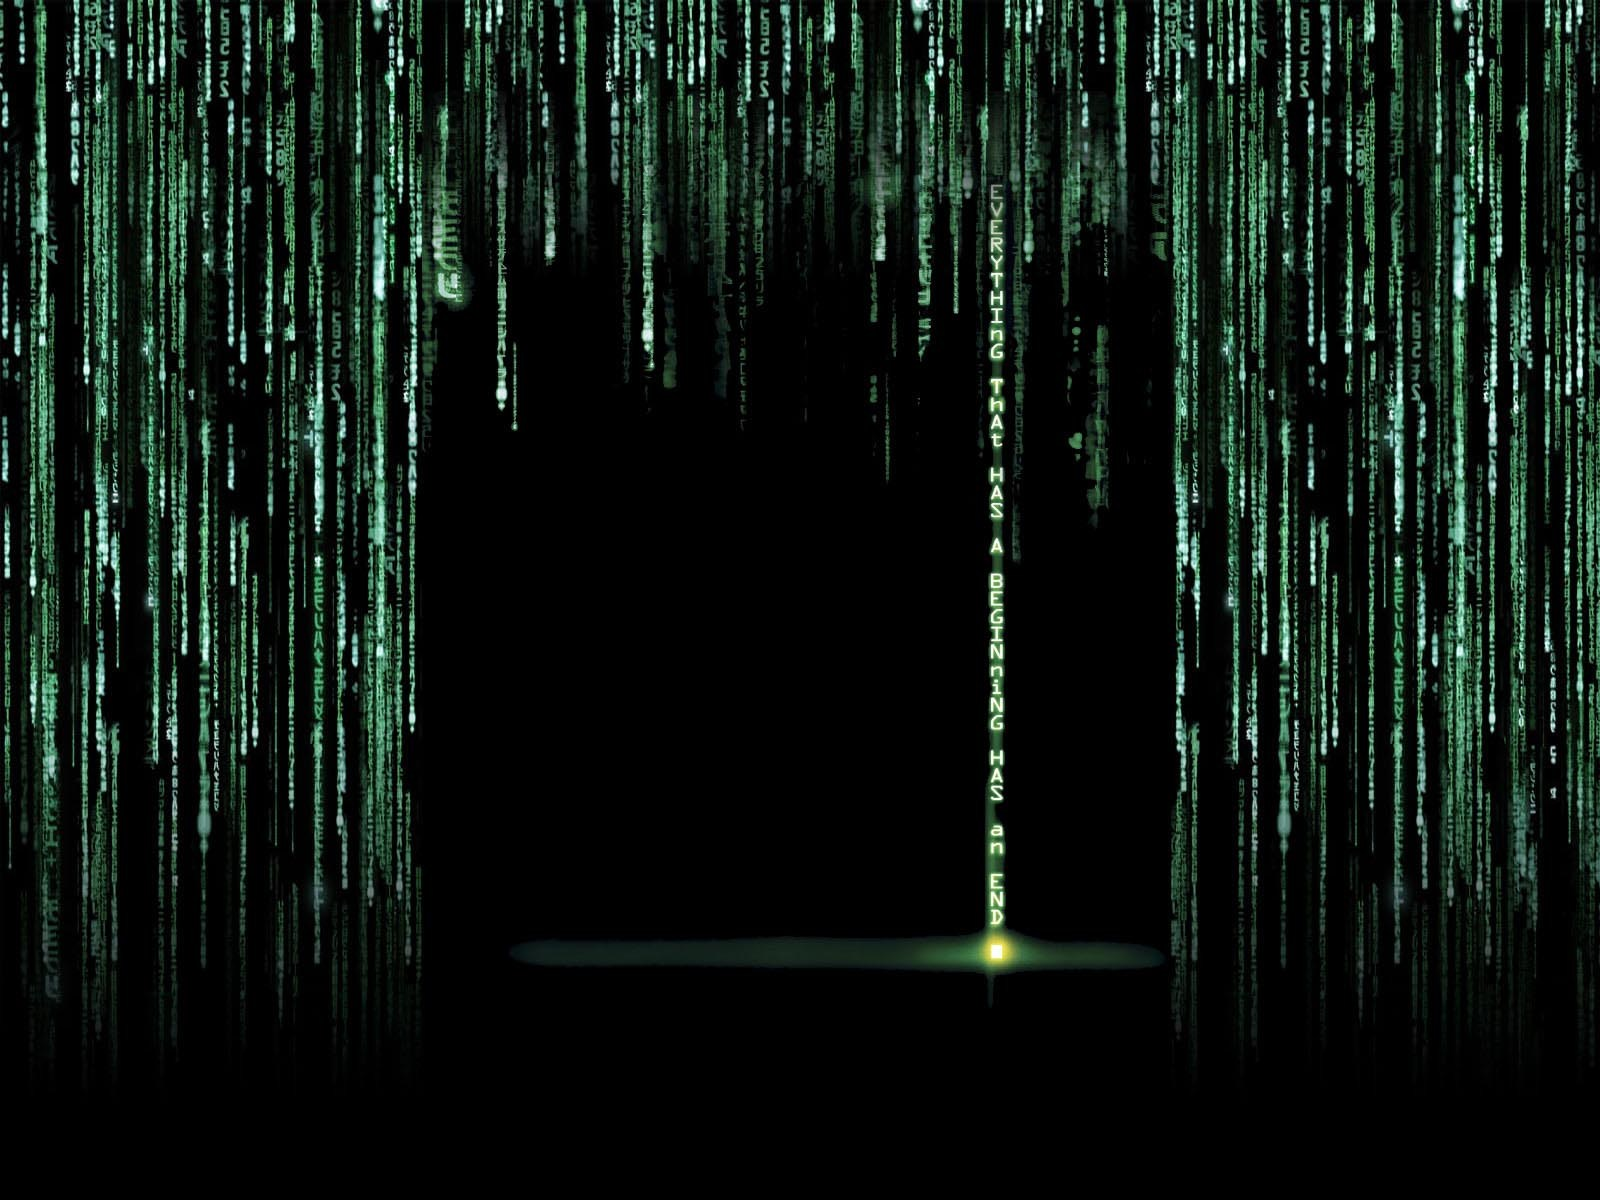 Matrix Live Wallpaper For Windows Wallpapersafari Matrix